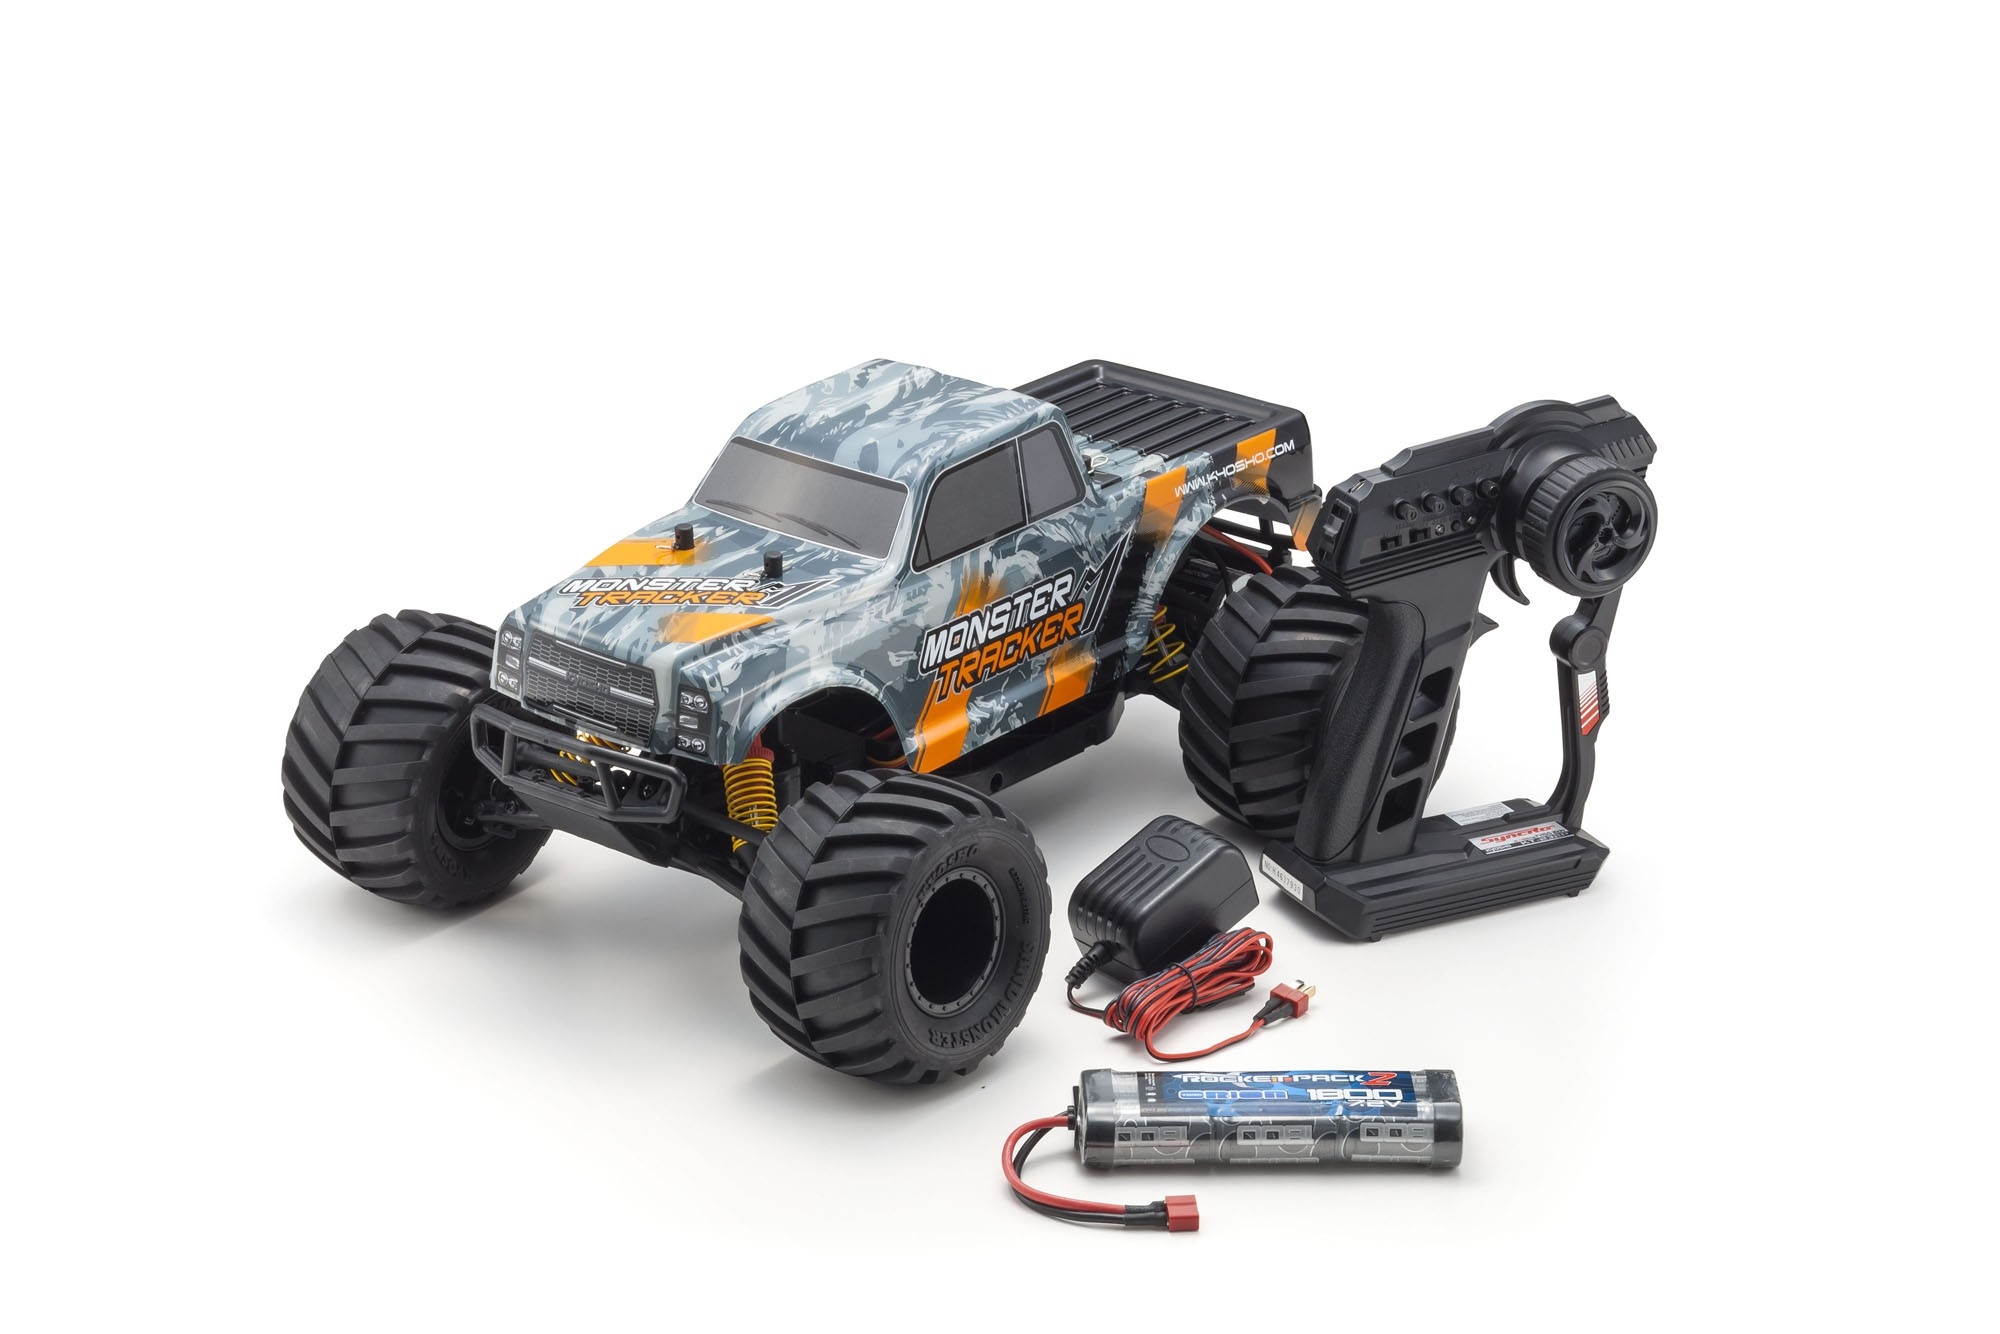 Kyosho Monster Tracker 2WD 1/10 EP T2 ReadySet